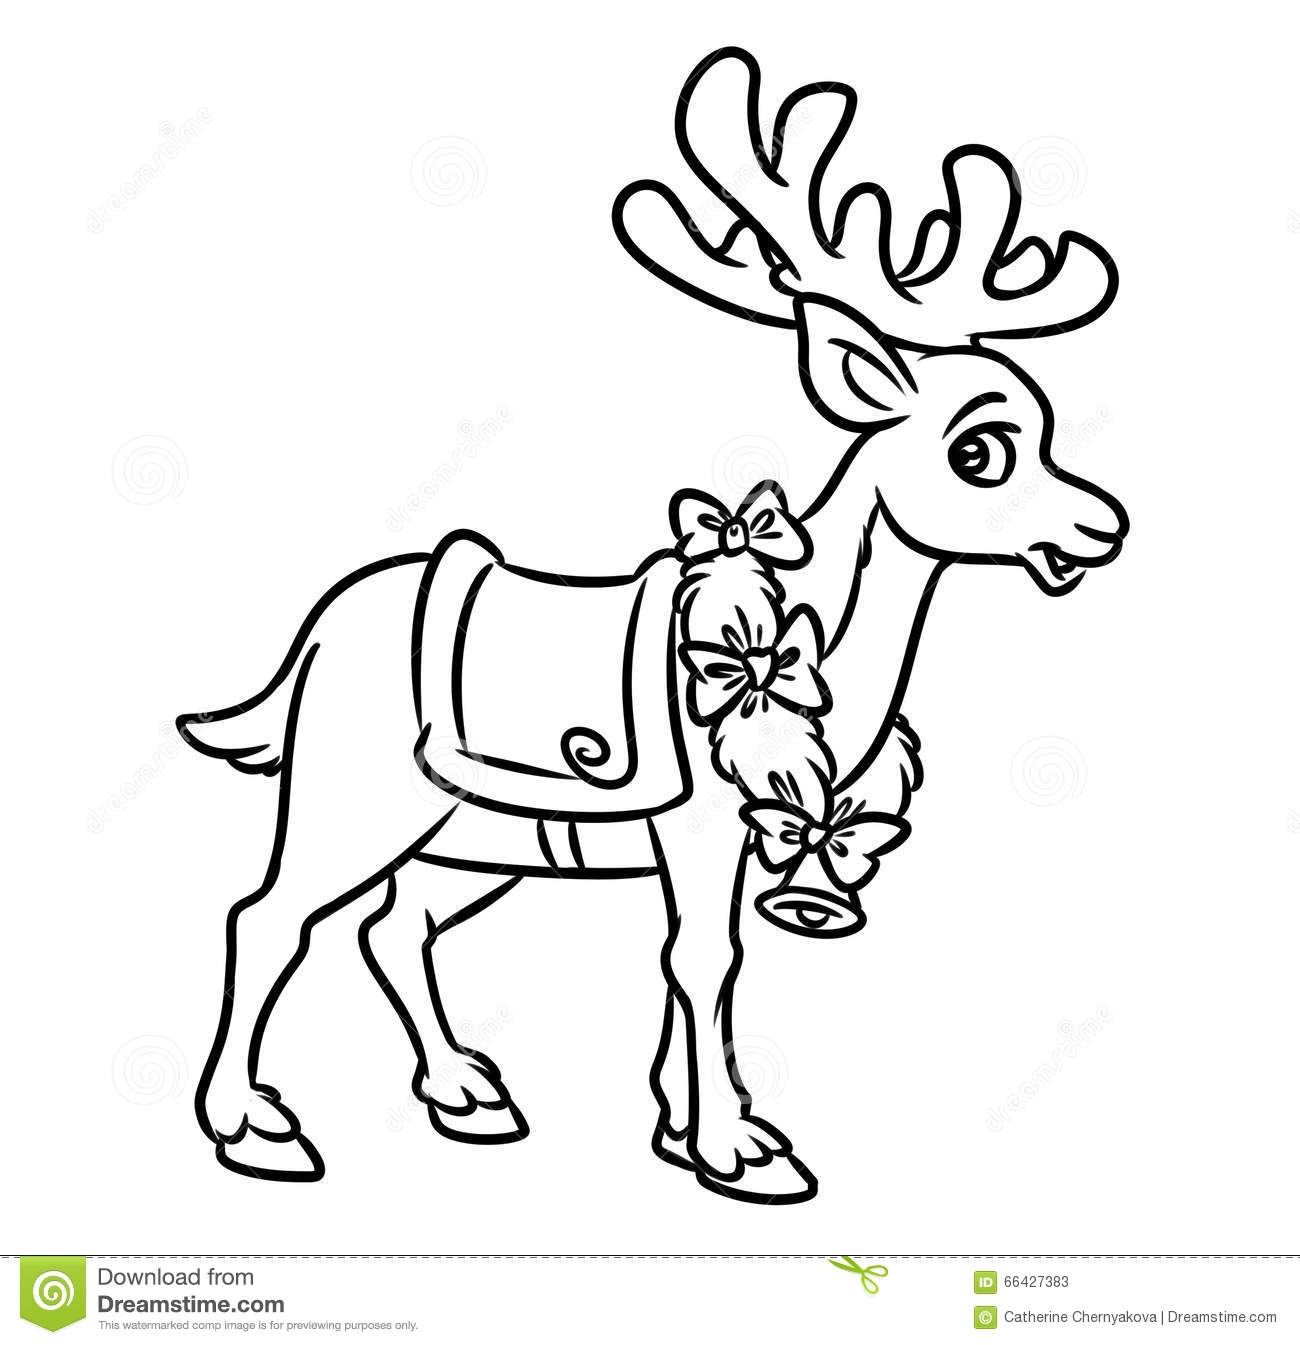 Santa and Reindeer Coloring Pages - Christmas Santa Reindeer Coloring Pages Stock Illustration